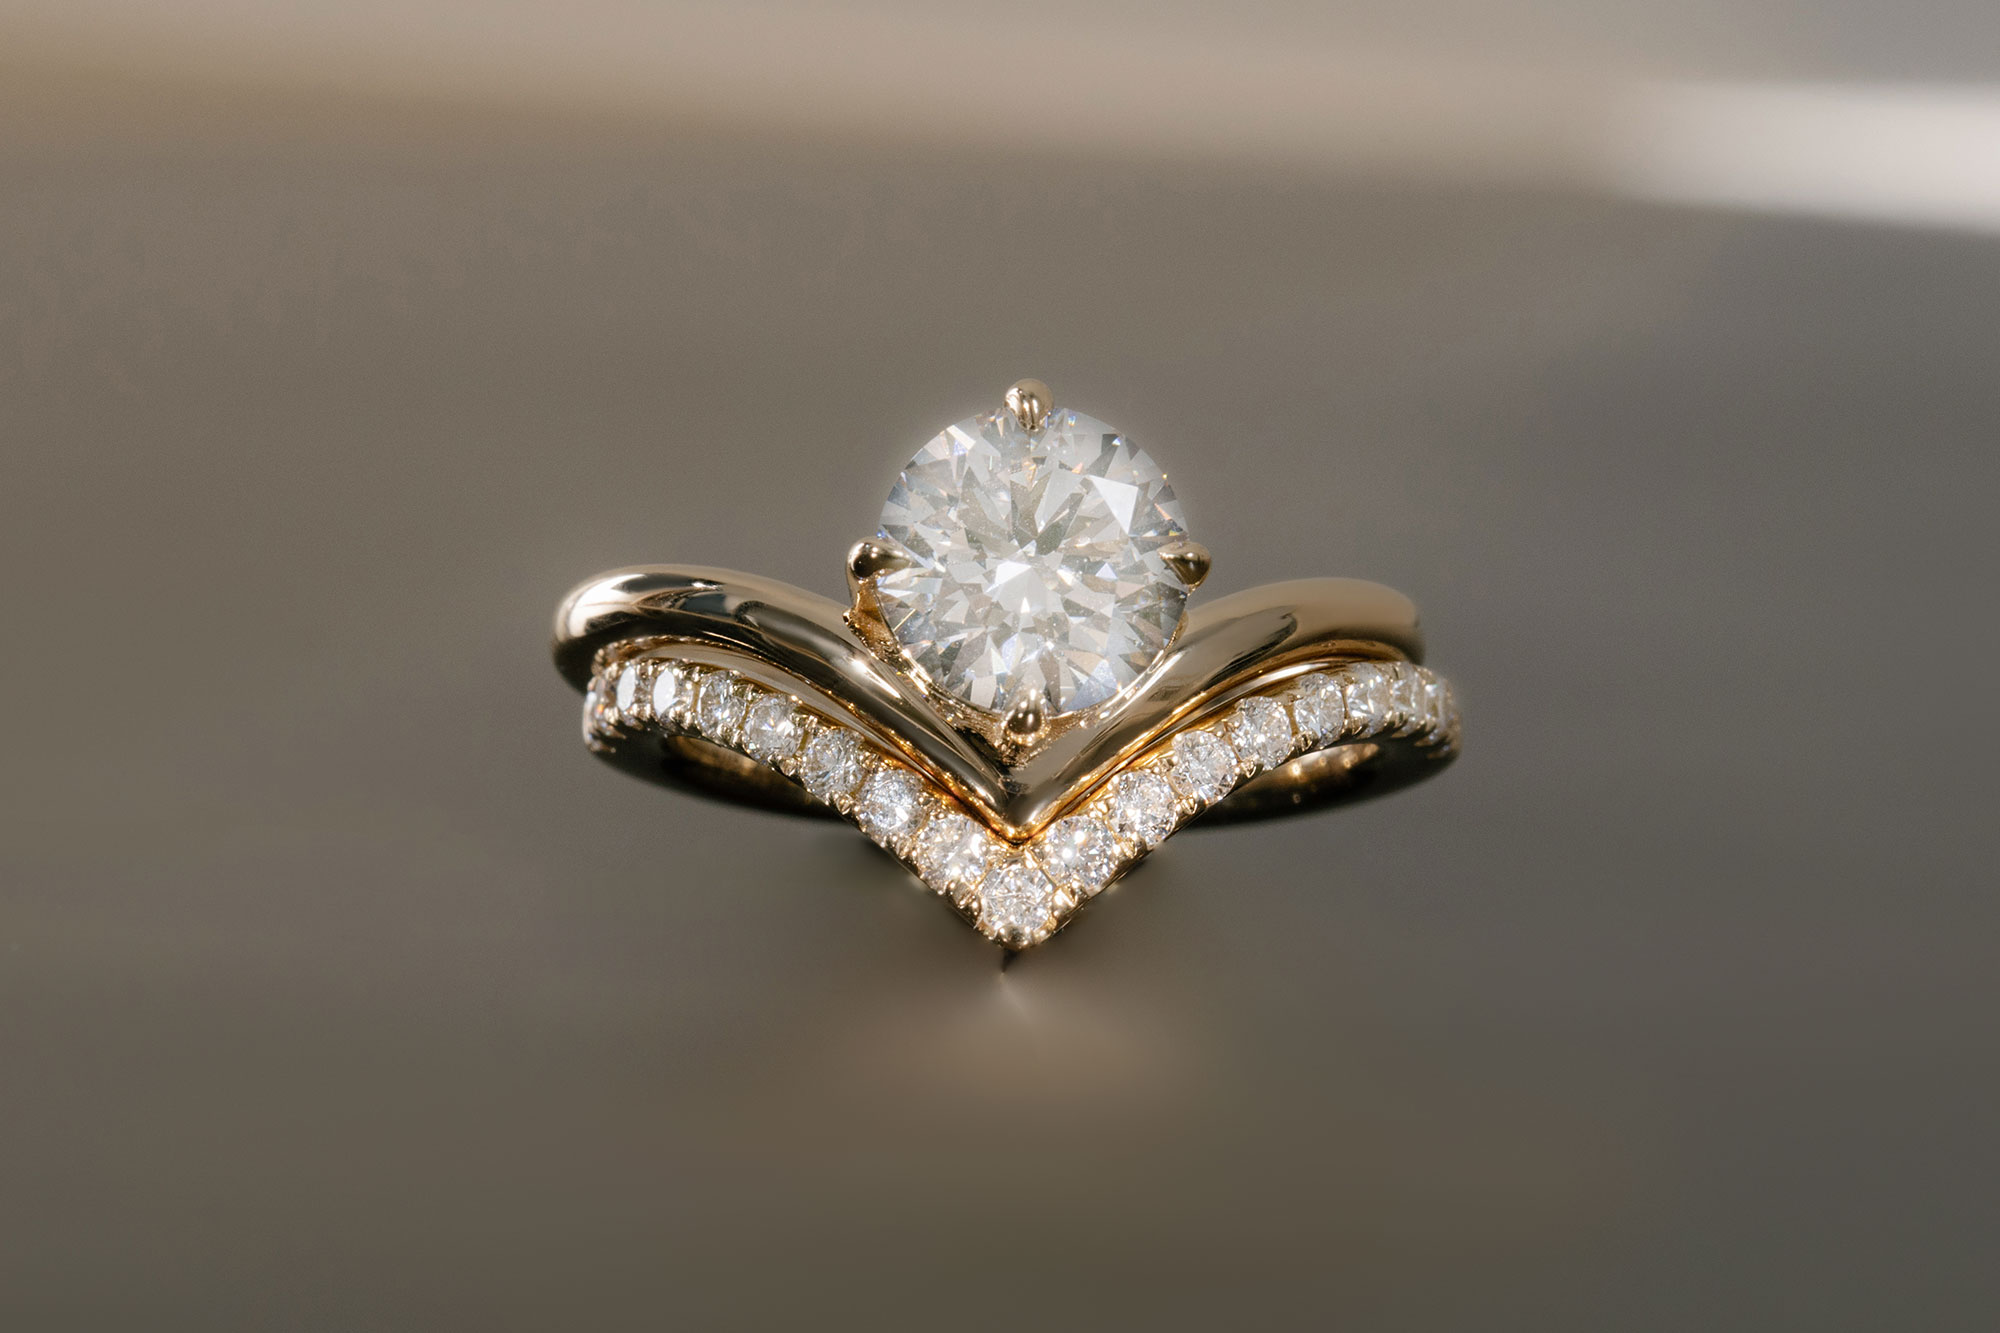 The round brilliant signature v engagement ring with yellow gold band